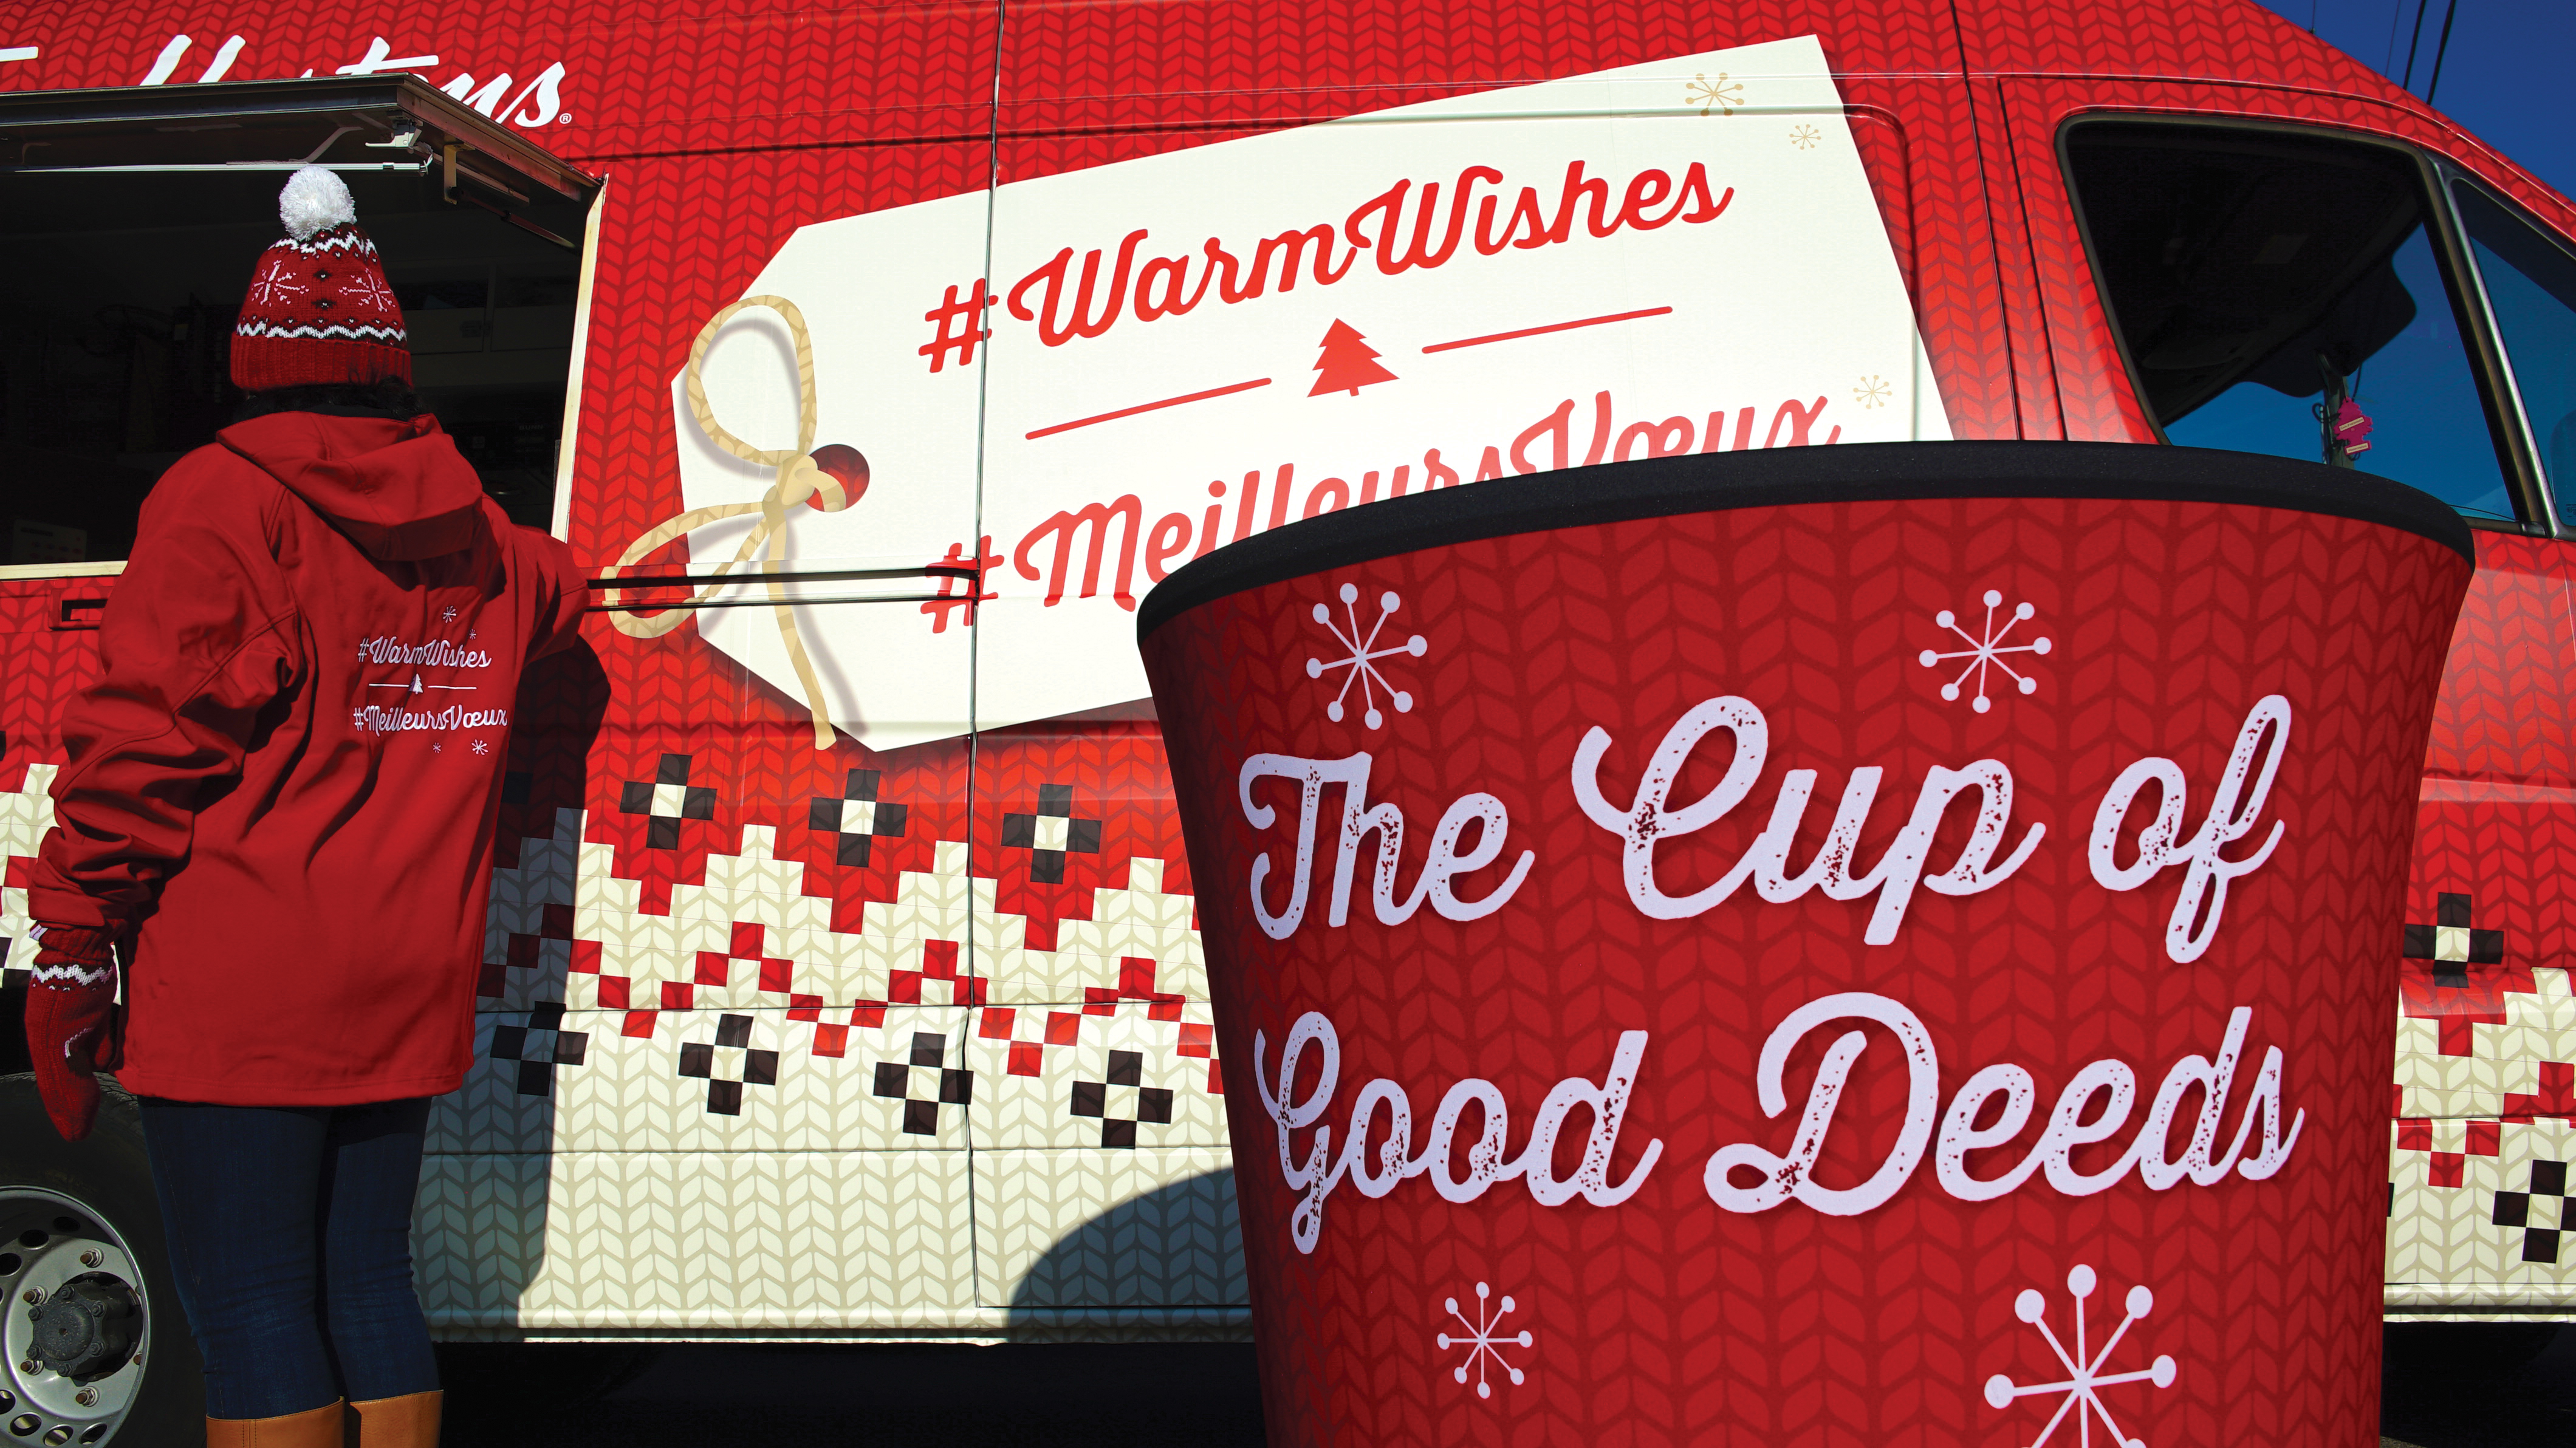 """To continue the brand's annual """"#WarmWishes"""" campaign, Citizen encouraged Canadians to pop by a """"Coffee Truck"""" set up in six Canadian cities. There, they could top off a wish for a deserving member of their community, and Timmies staffers tried to bring as many to life as possible."""